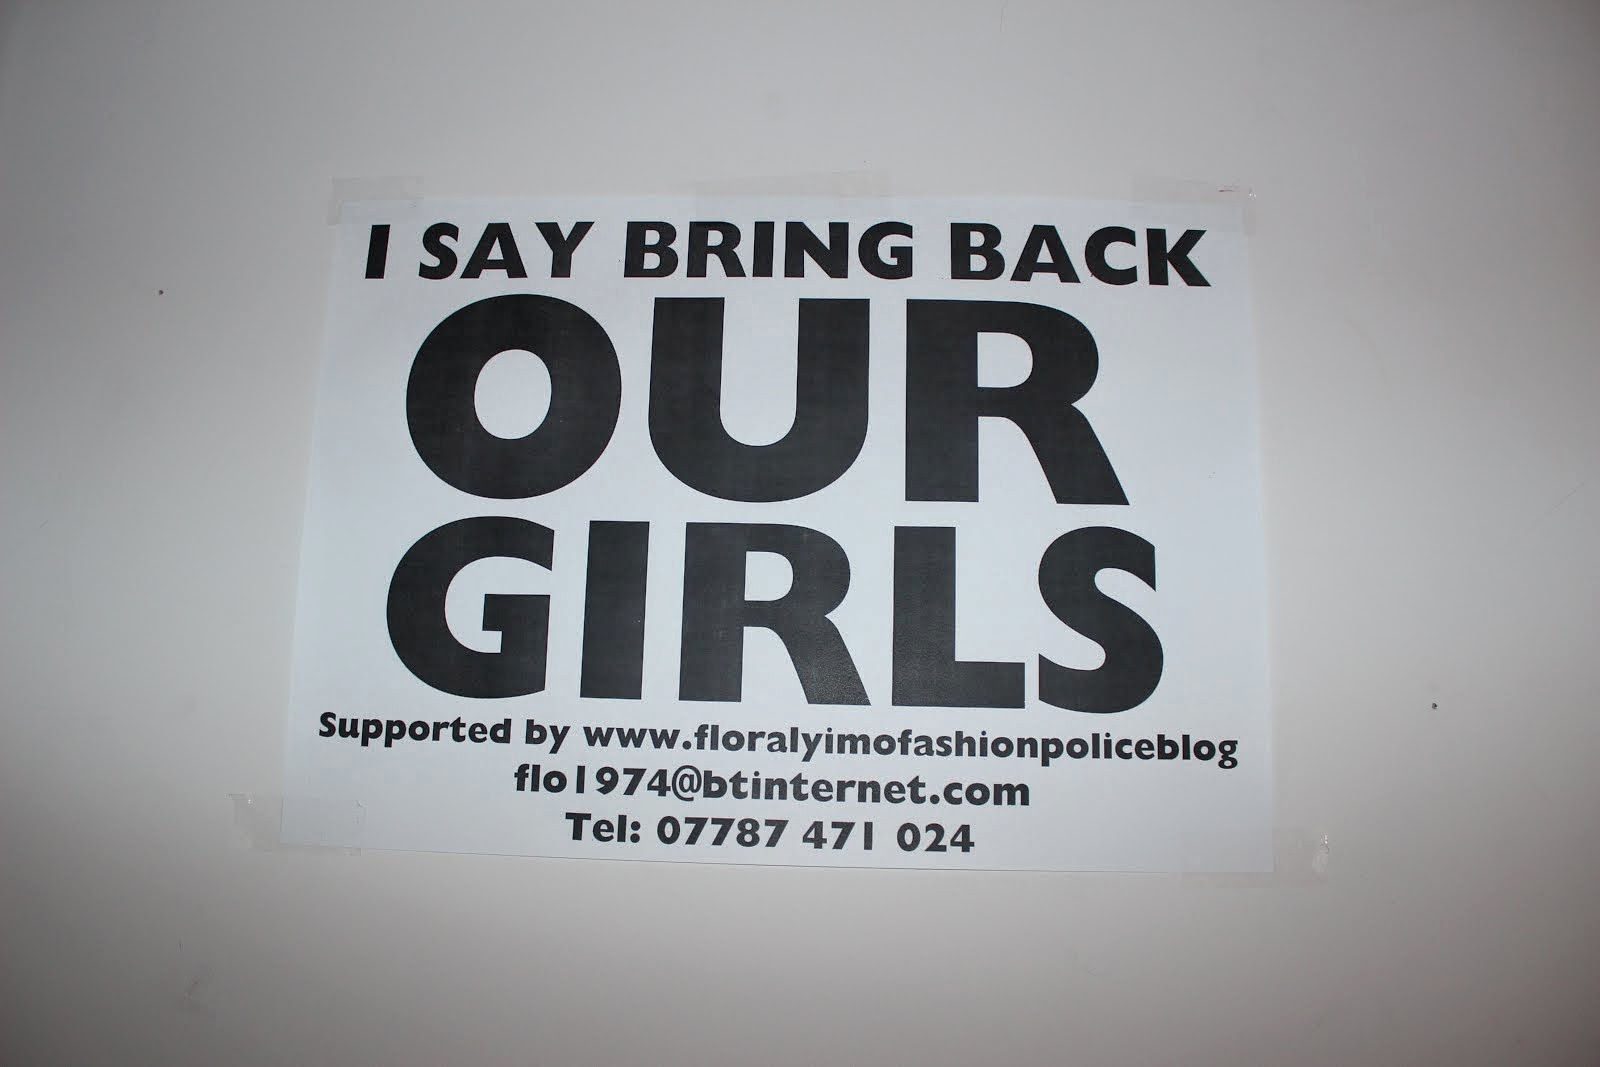 I SAY BRING BACK OUR GIRLS